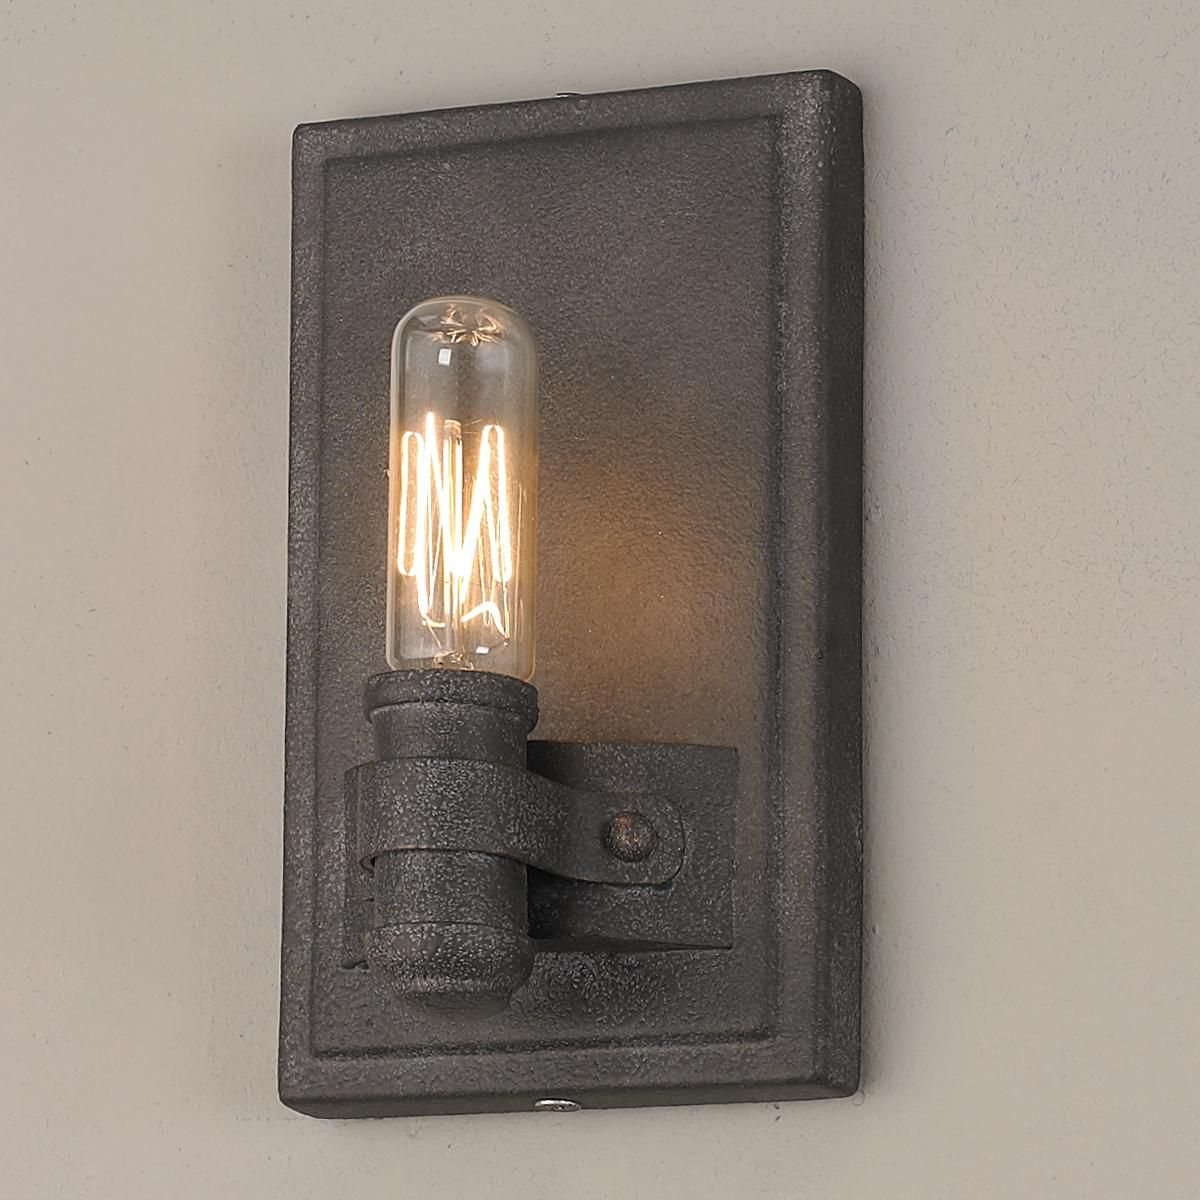 Castlebar Bare Sconce Bathroom SconcesModern Wall